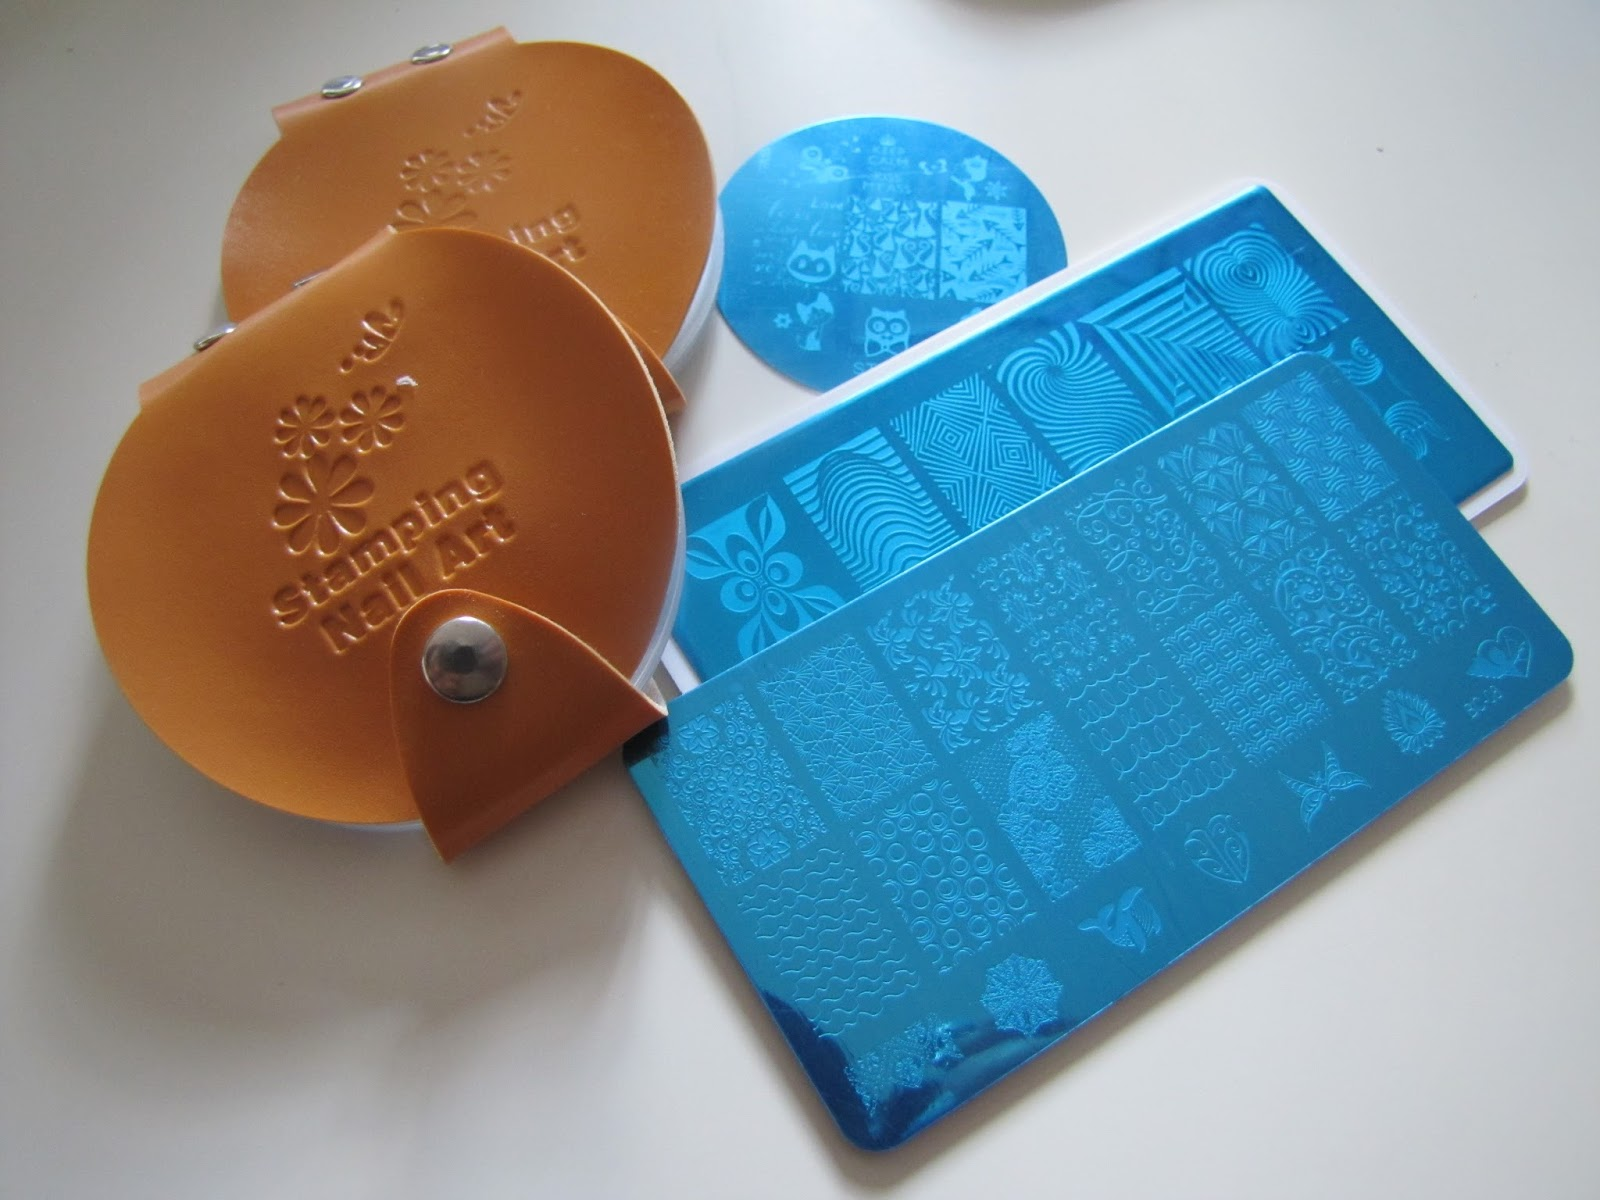 a4689e60a8 I do have a stamping plate holder for the small round plates